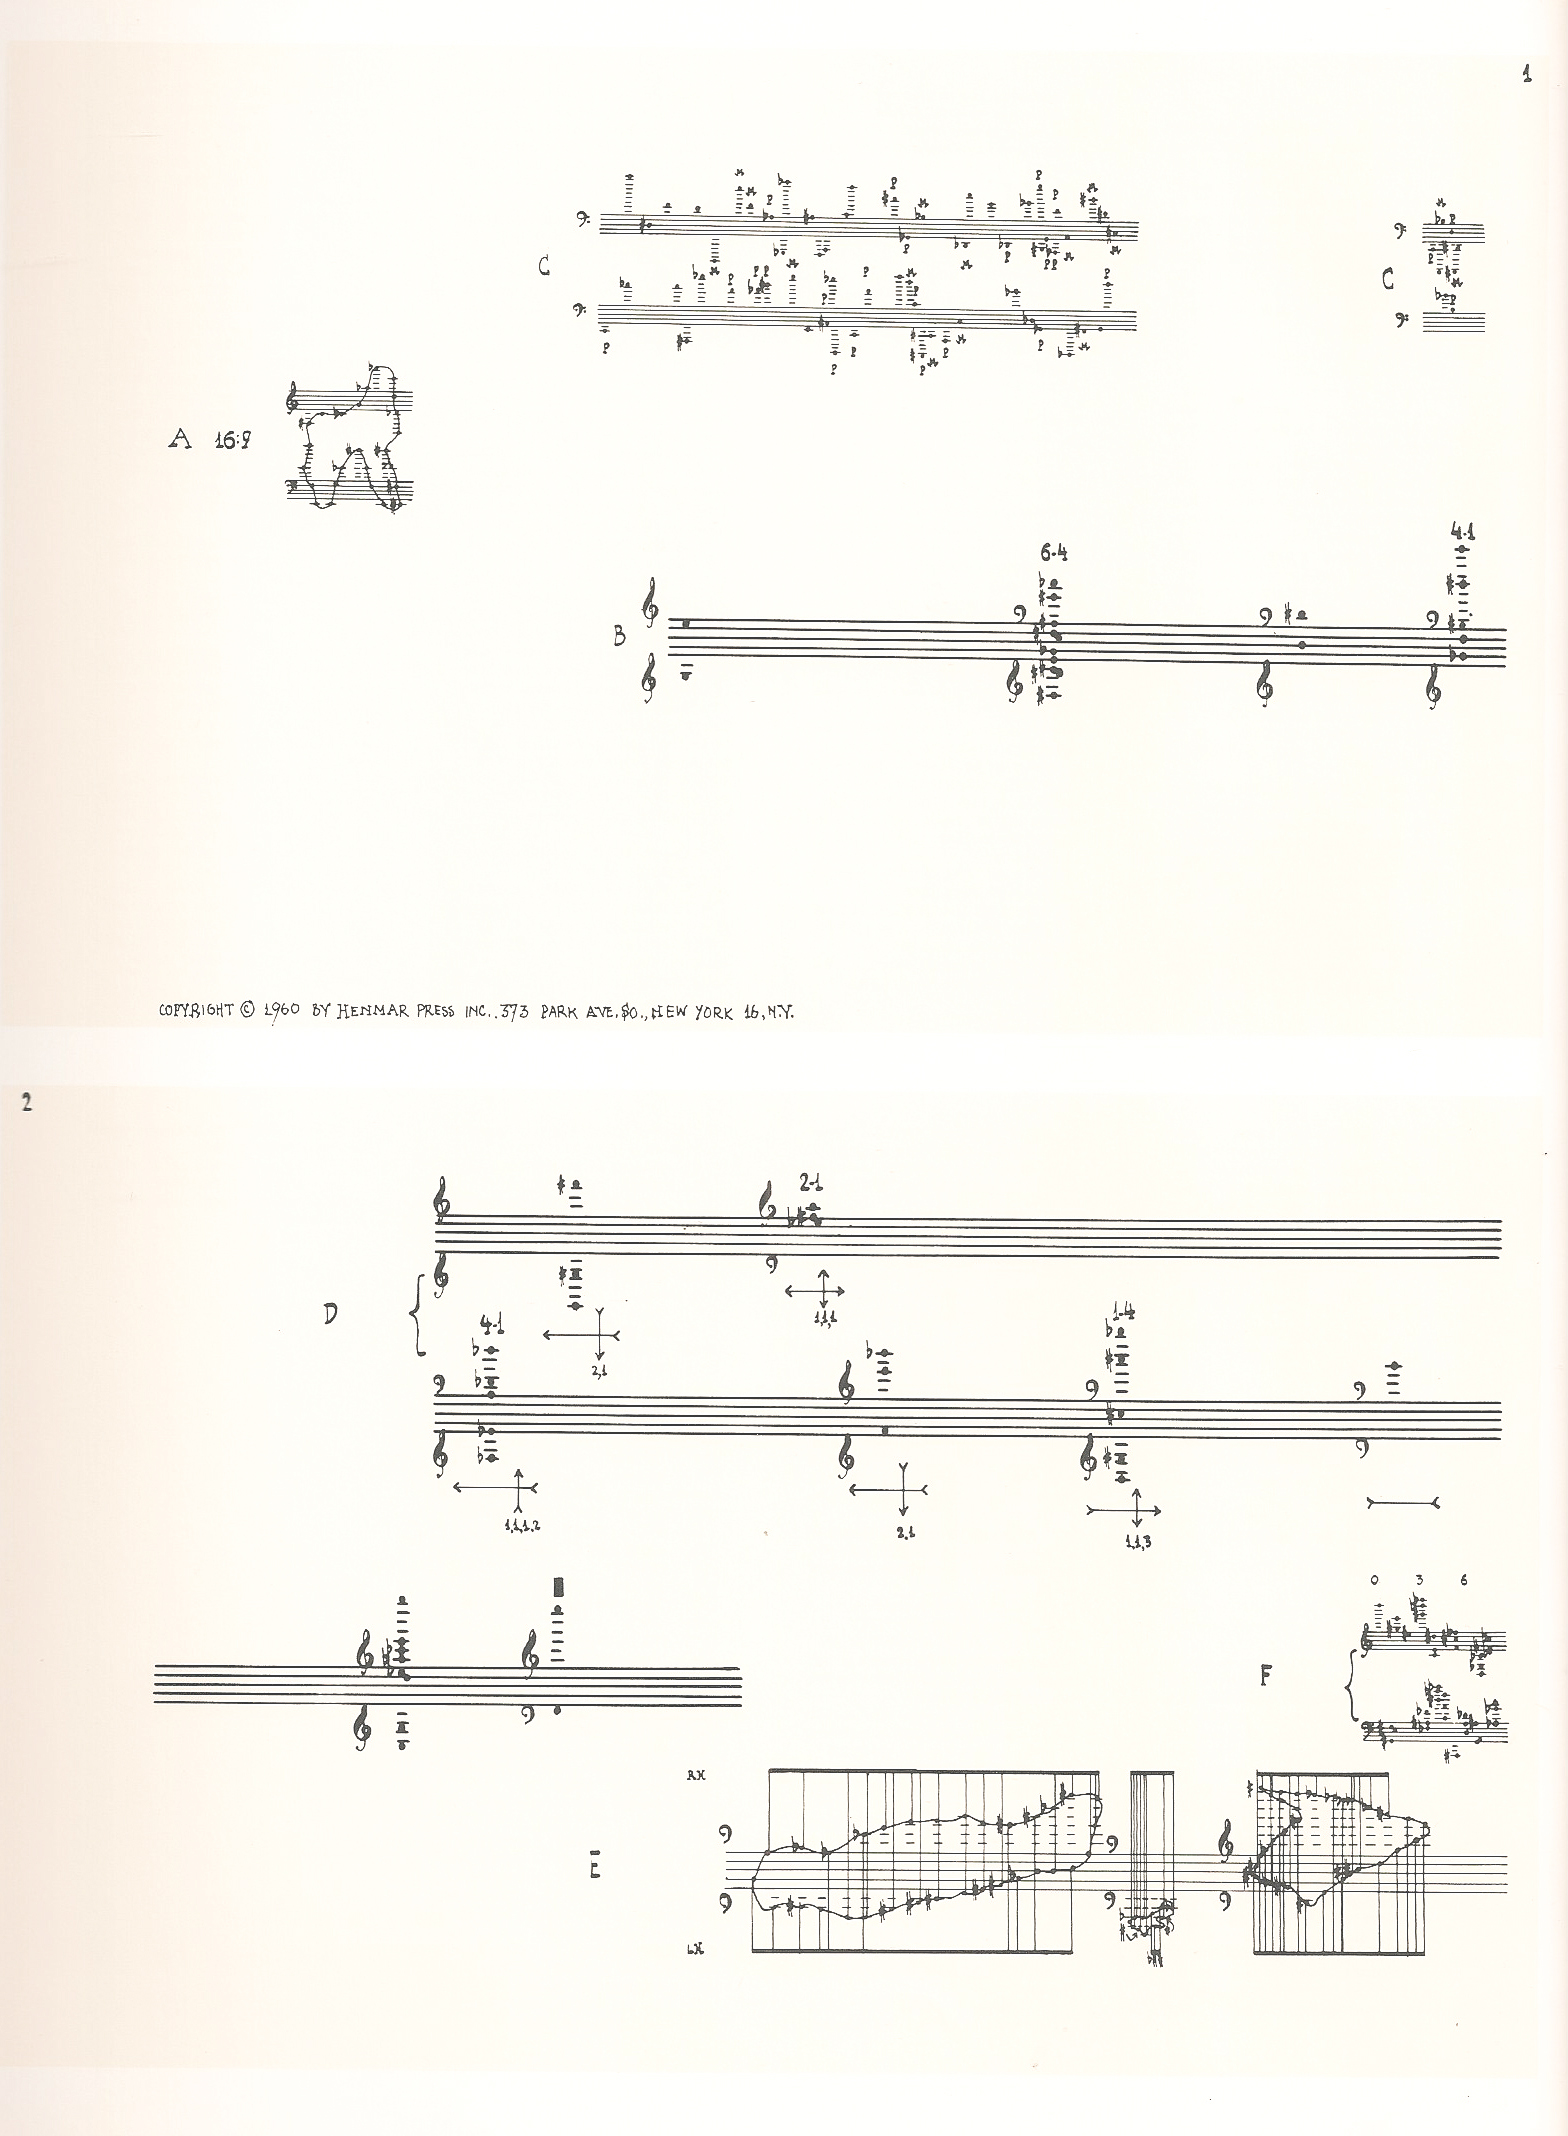 A page from Cage's Concert for Piano and Orchestra.